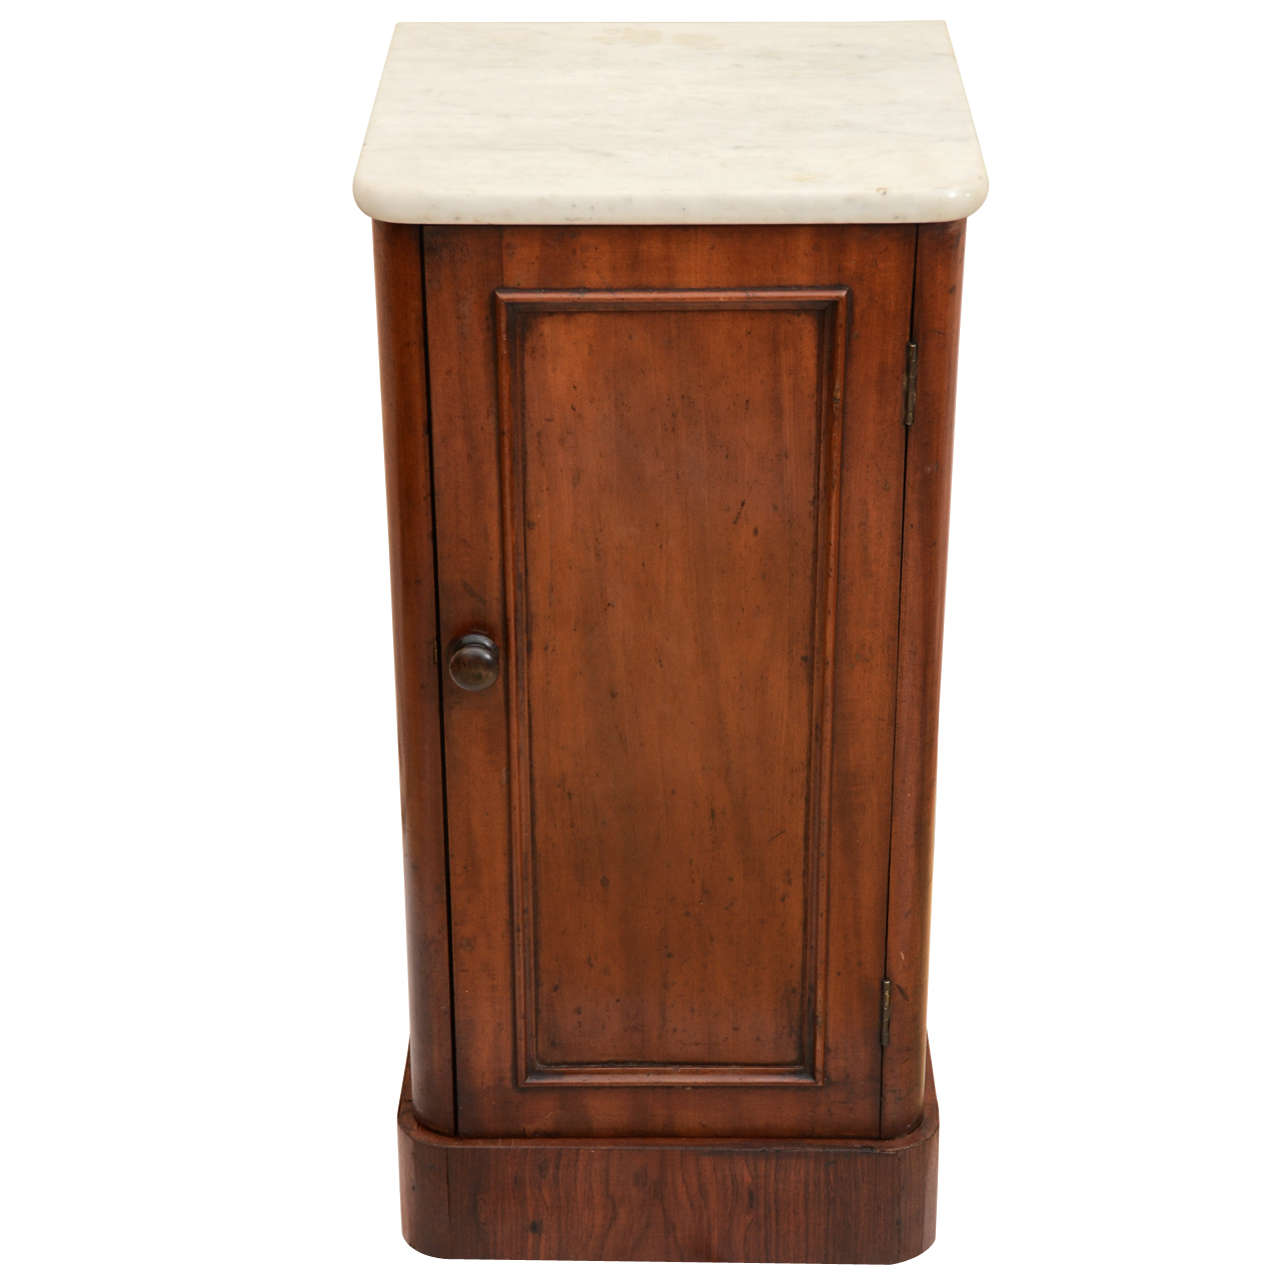 English Mahogany Marble Top Bedside Cabinet 1